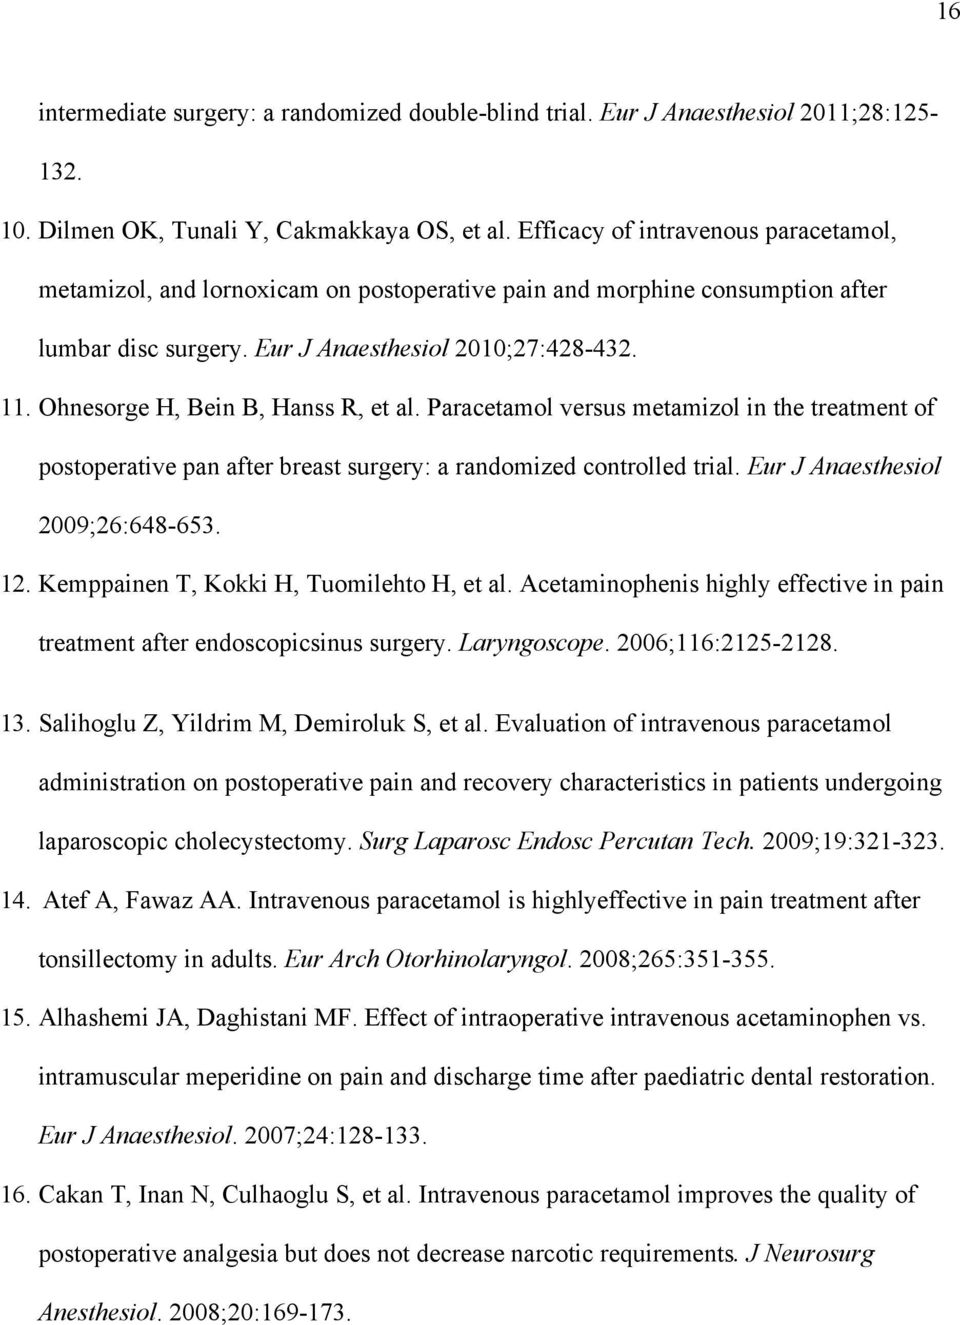 Ohnesorge H, Bein B, Hanss R, et al. Paracetamol versus metamizol in the treatment of postoperative pan after breast surgery: a randomized controlled trial. Eur J Anaesthesiol 2009;26:648-653. 12.